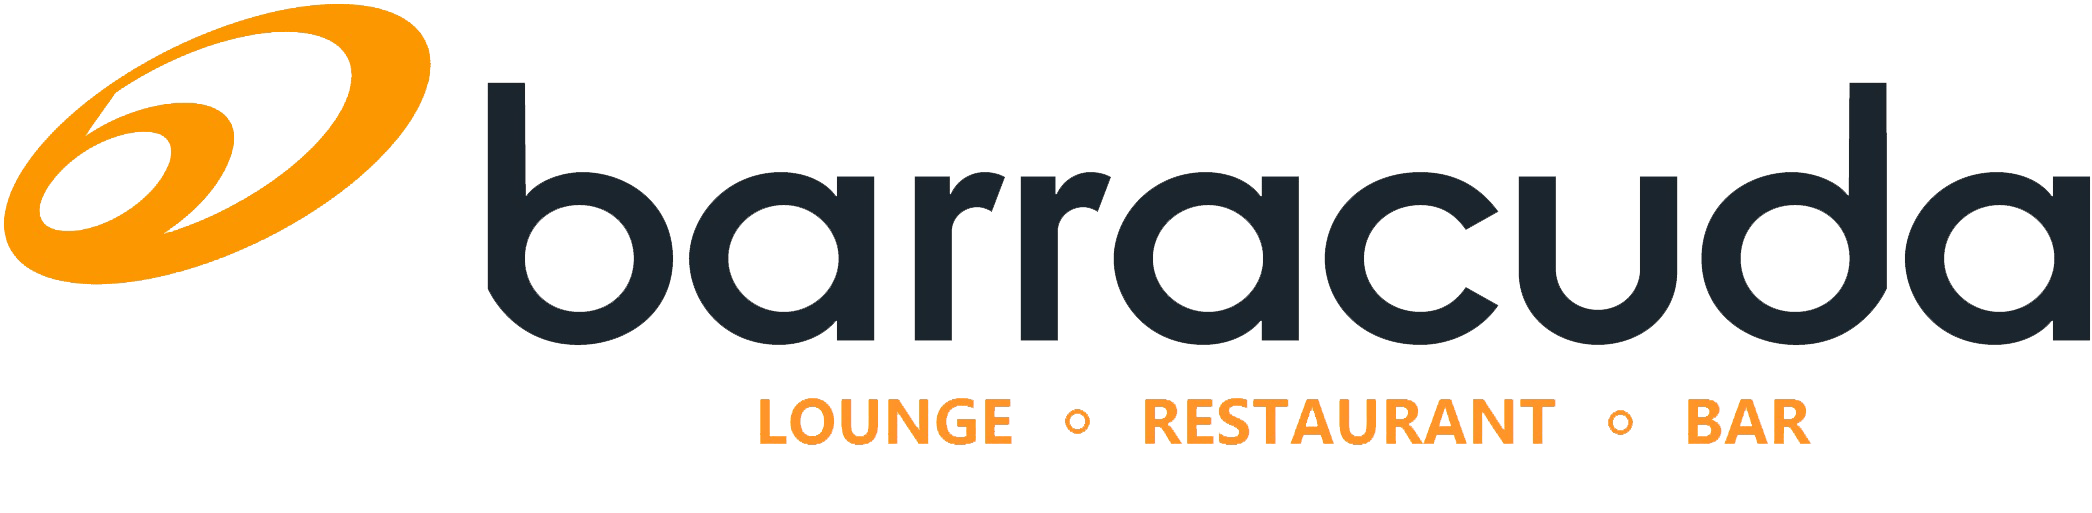 Barracuda Lounge